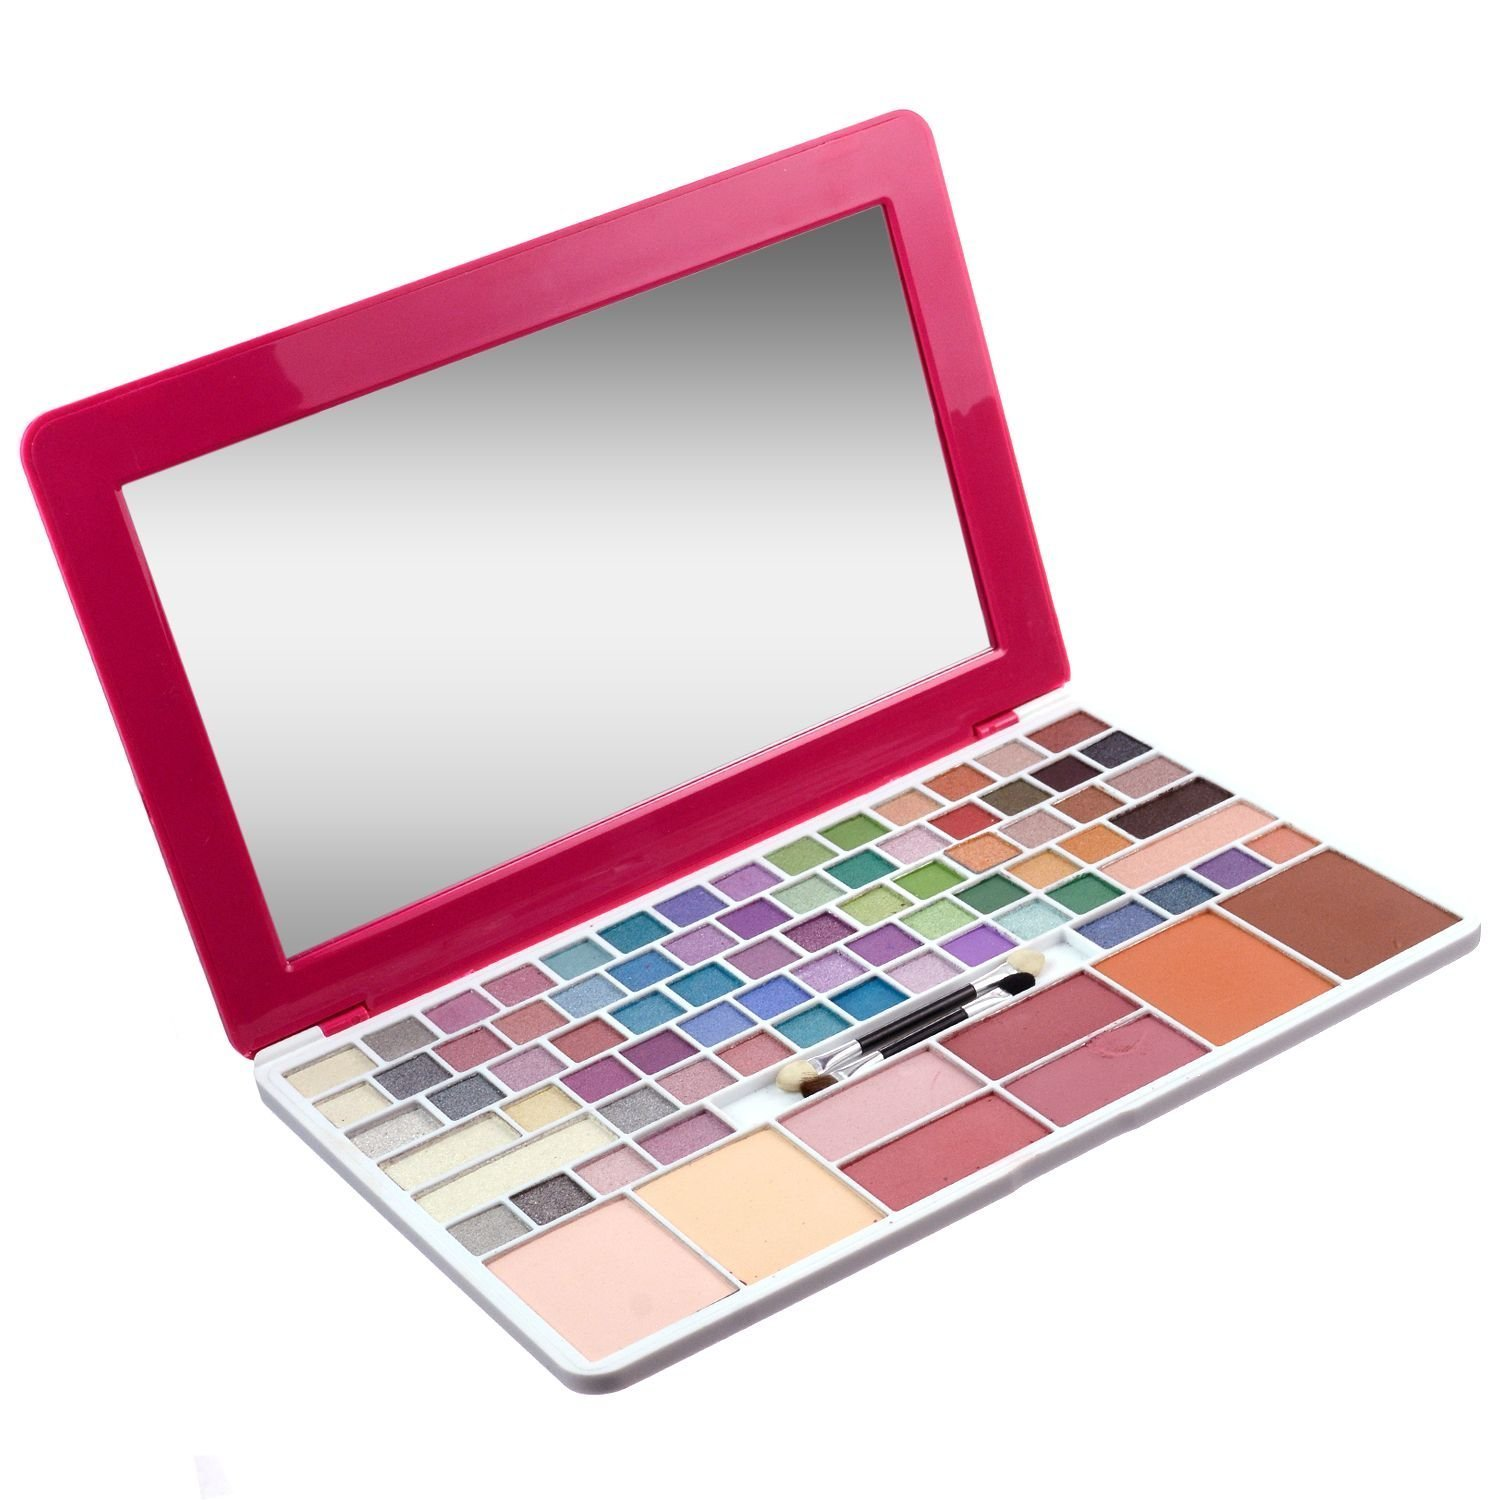 Make-Up Book Pro Deluxe Cosmetics Set